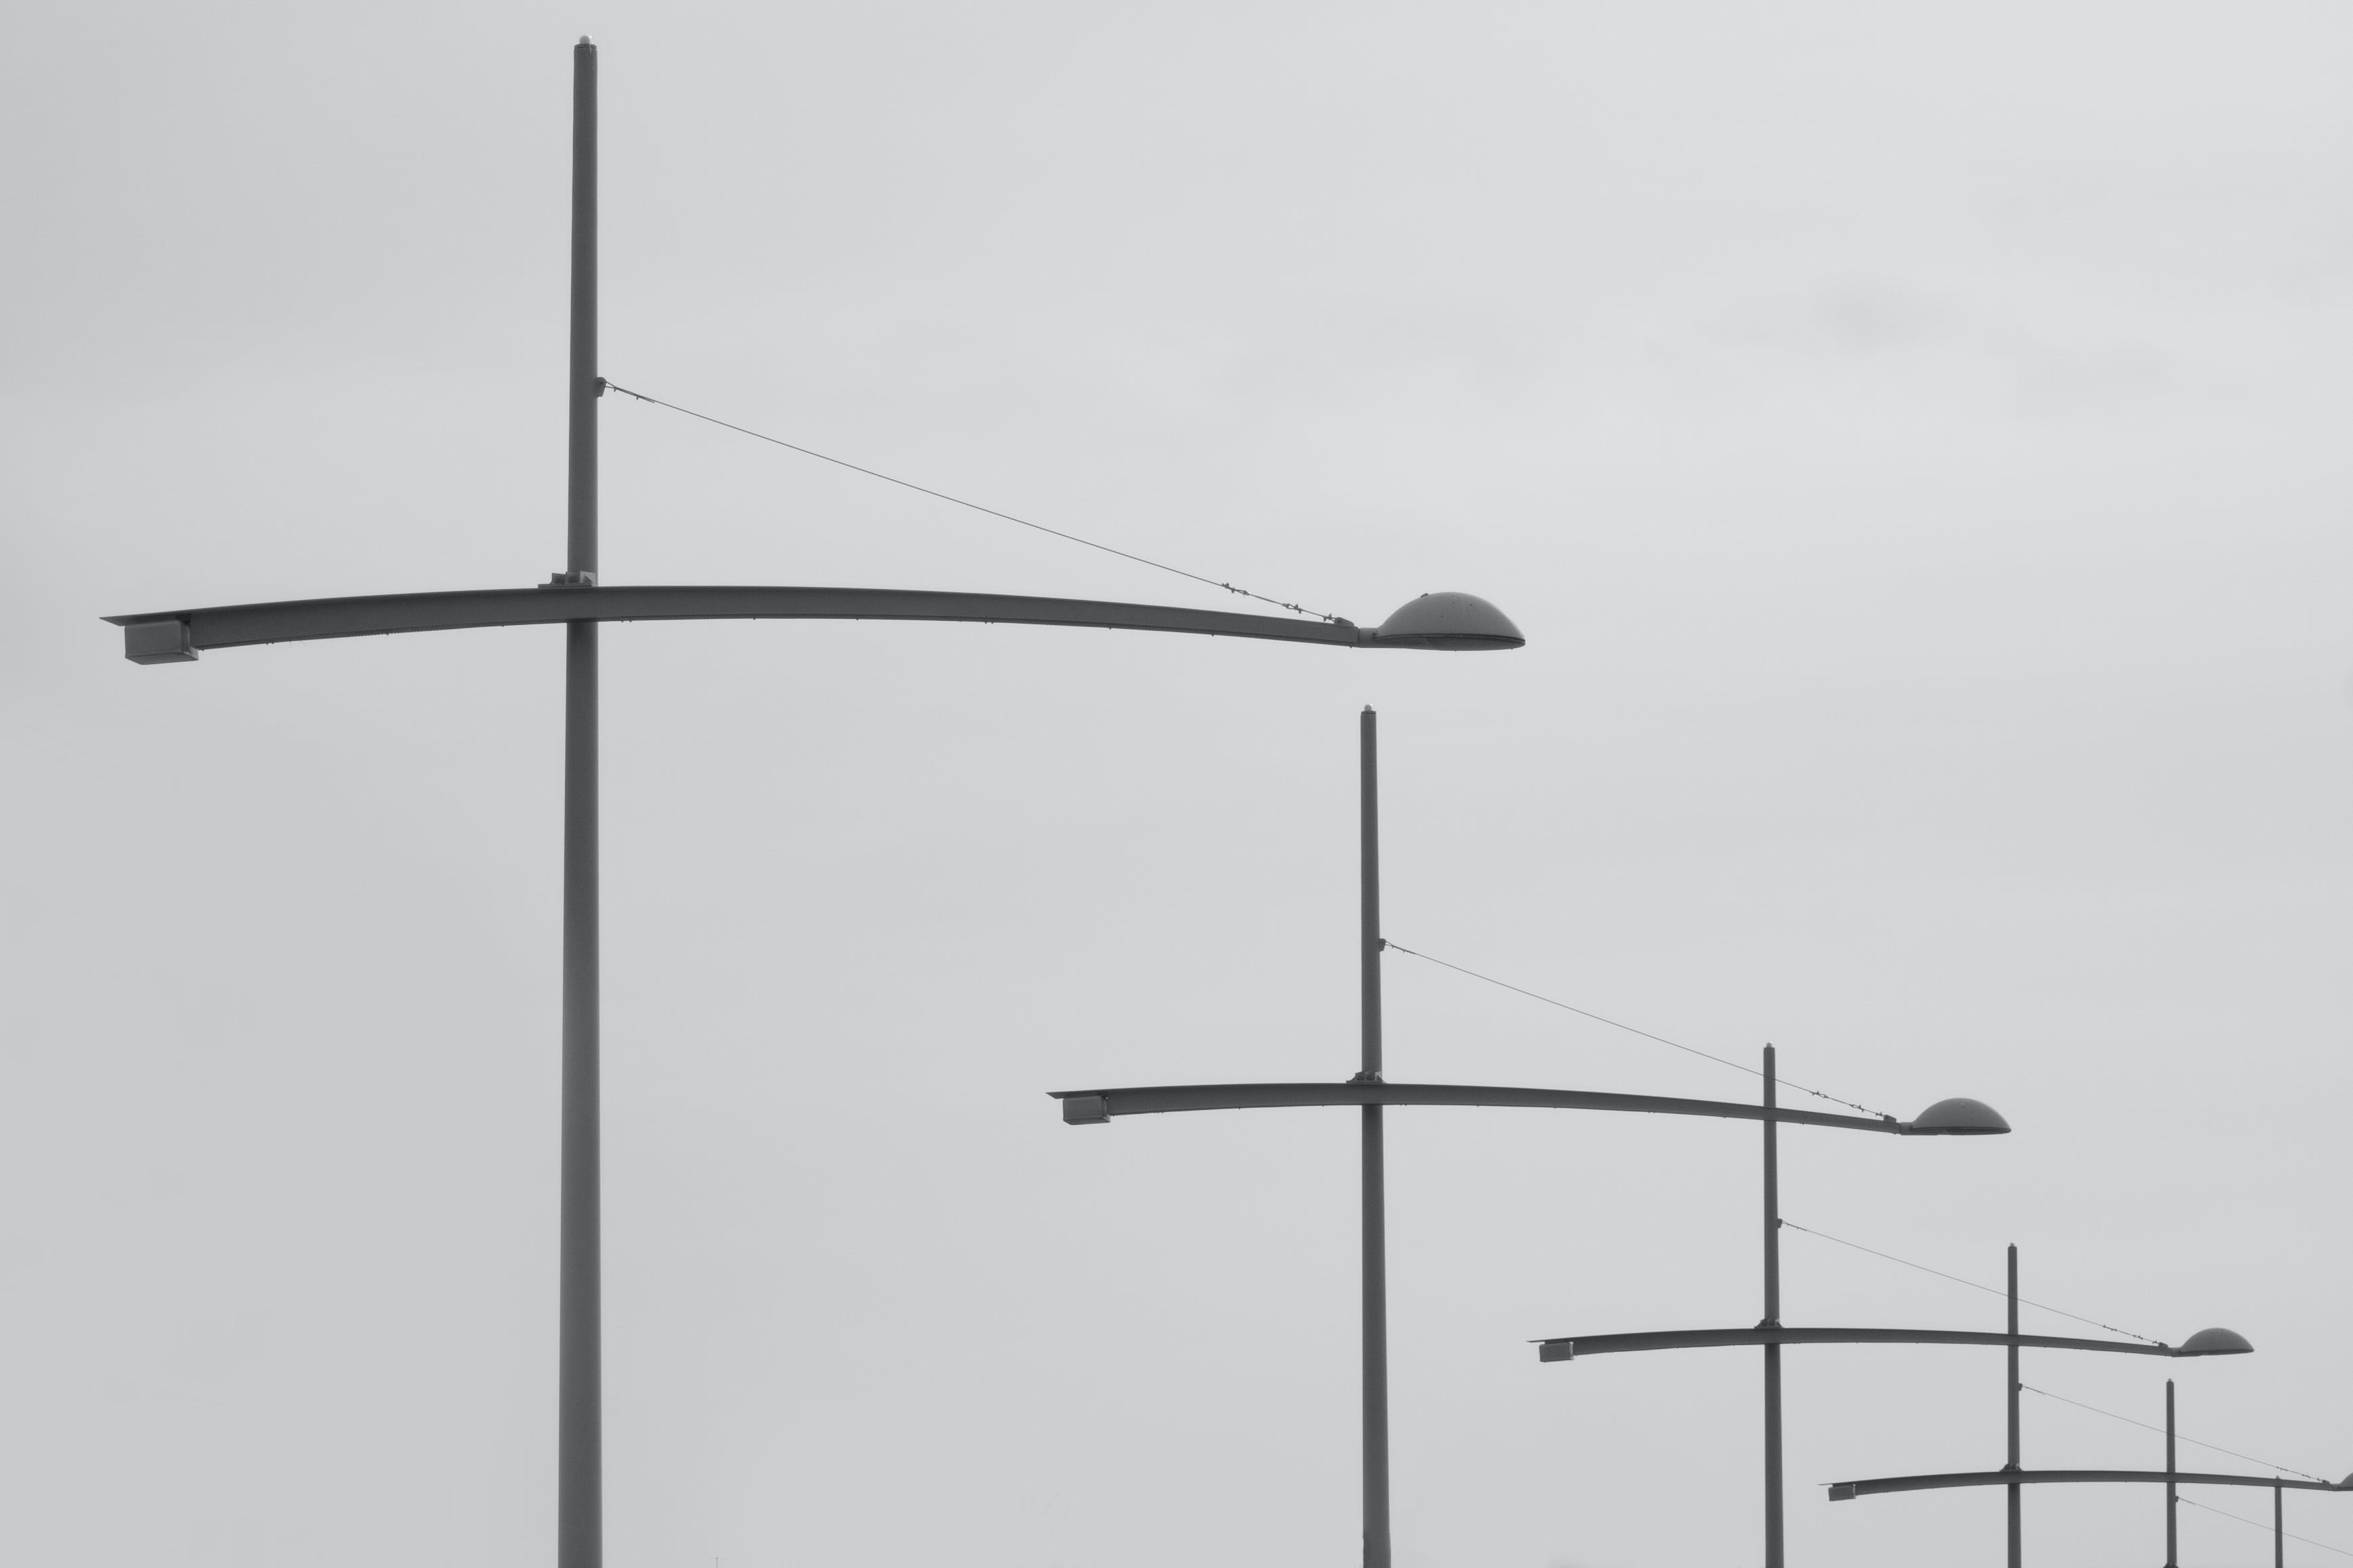 Photograph of Electric Posts